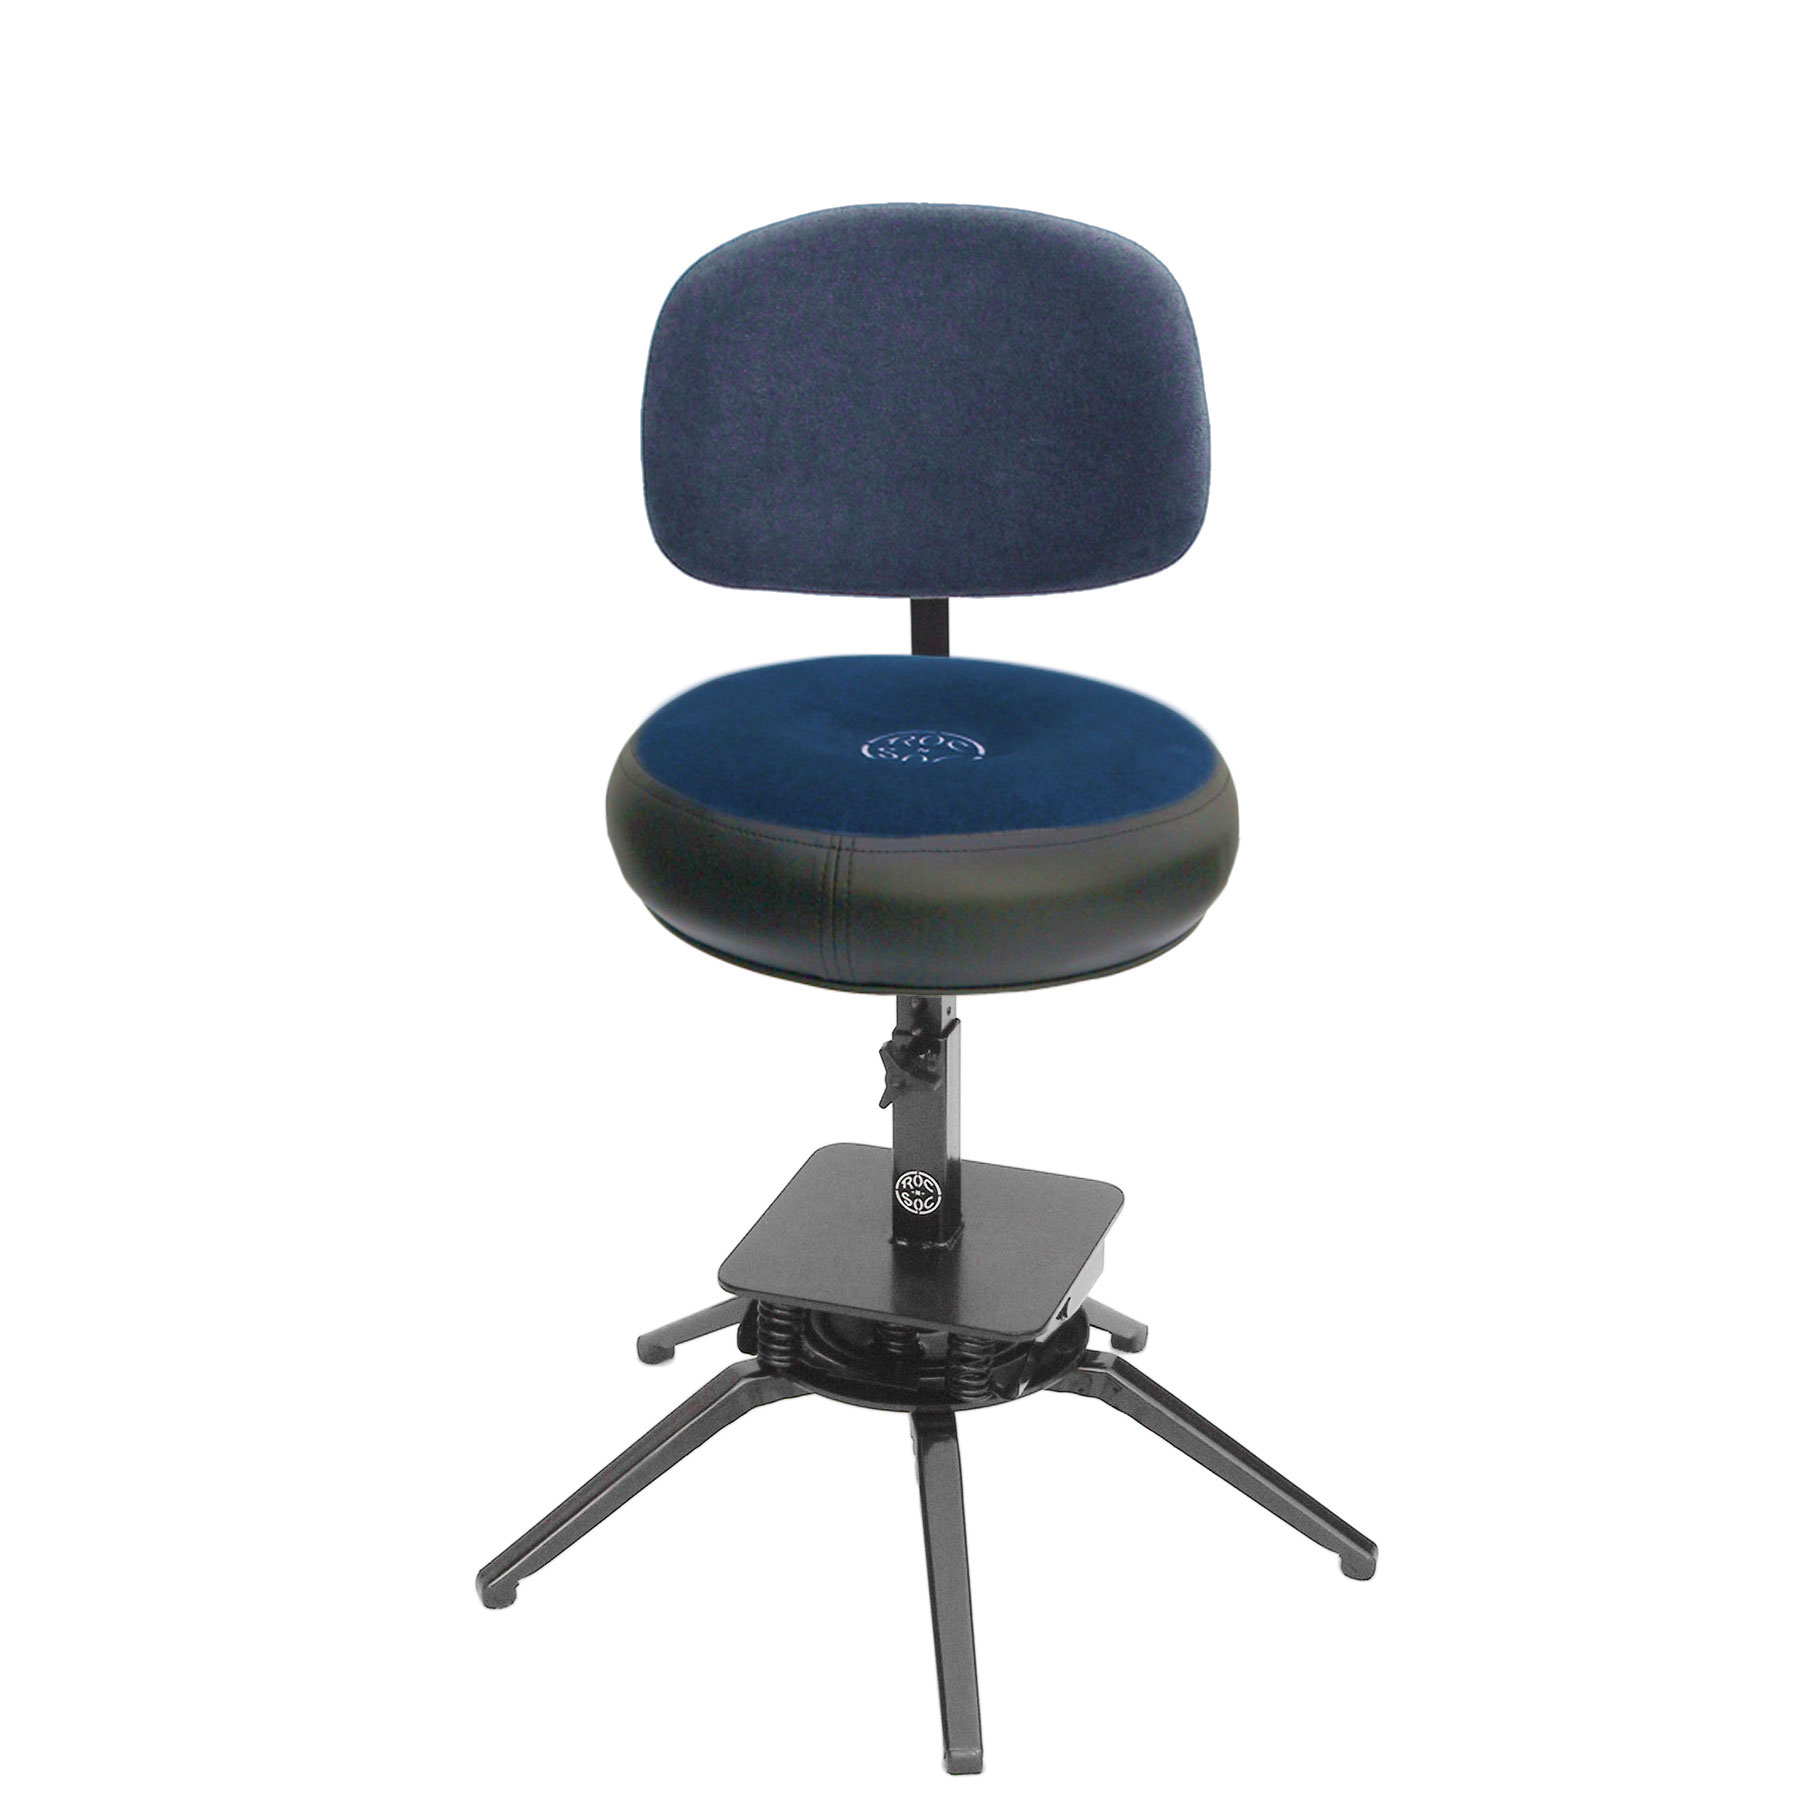 roc n soc motion gas lift drum throne with round seat back rest mtg r w b. Black Bedroom Furniture Sets. Home Design Ideas